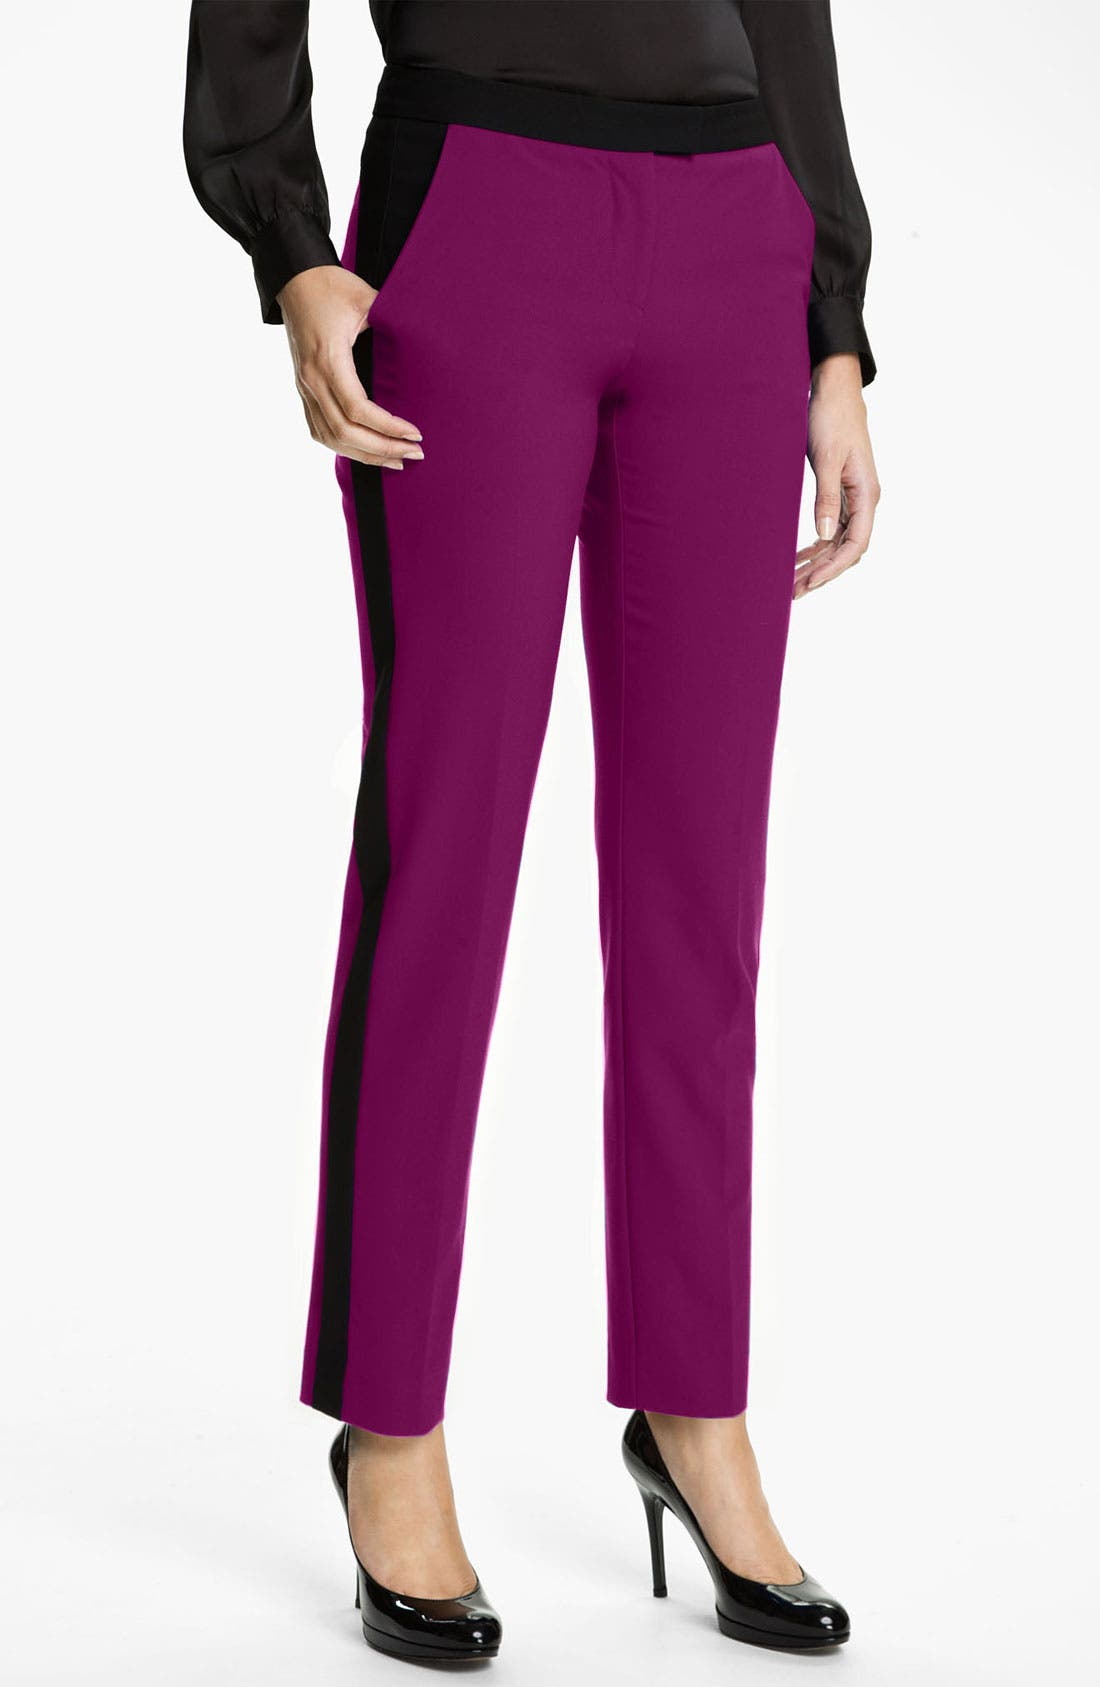 Alternate Image 1 Selected - Vince Camuto Colorblock Pants